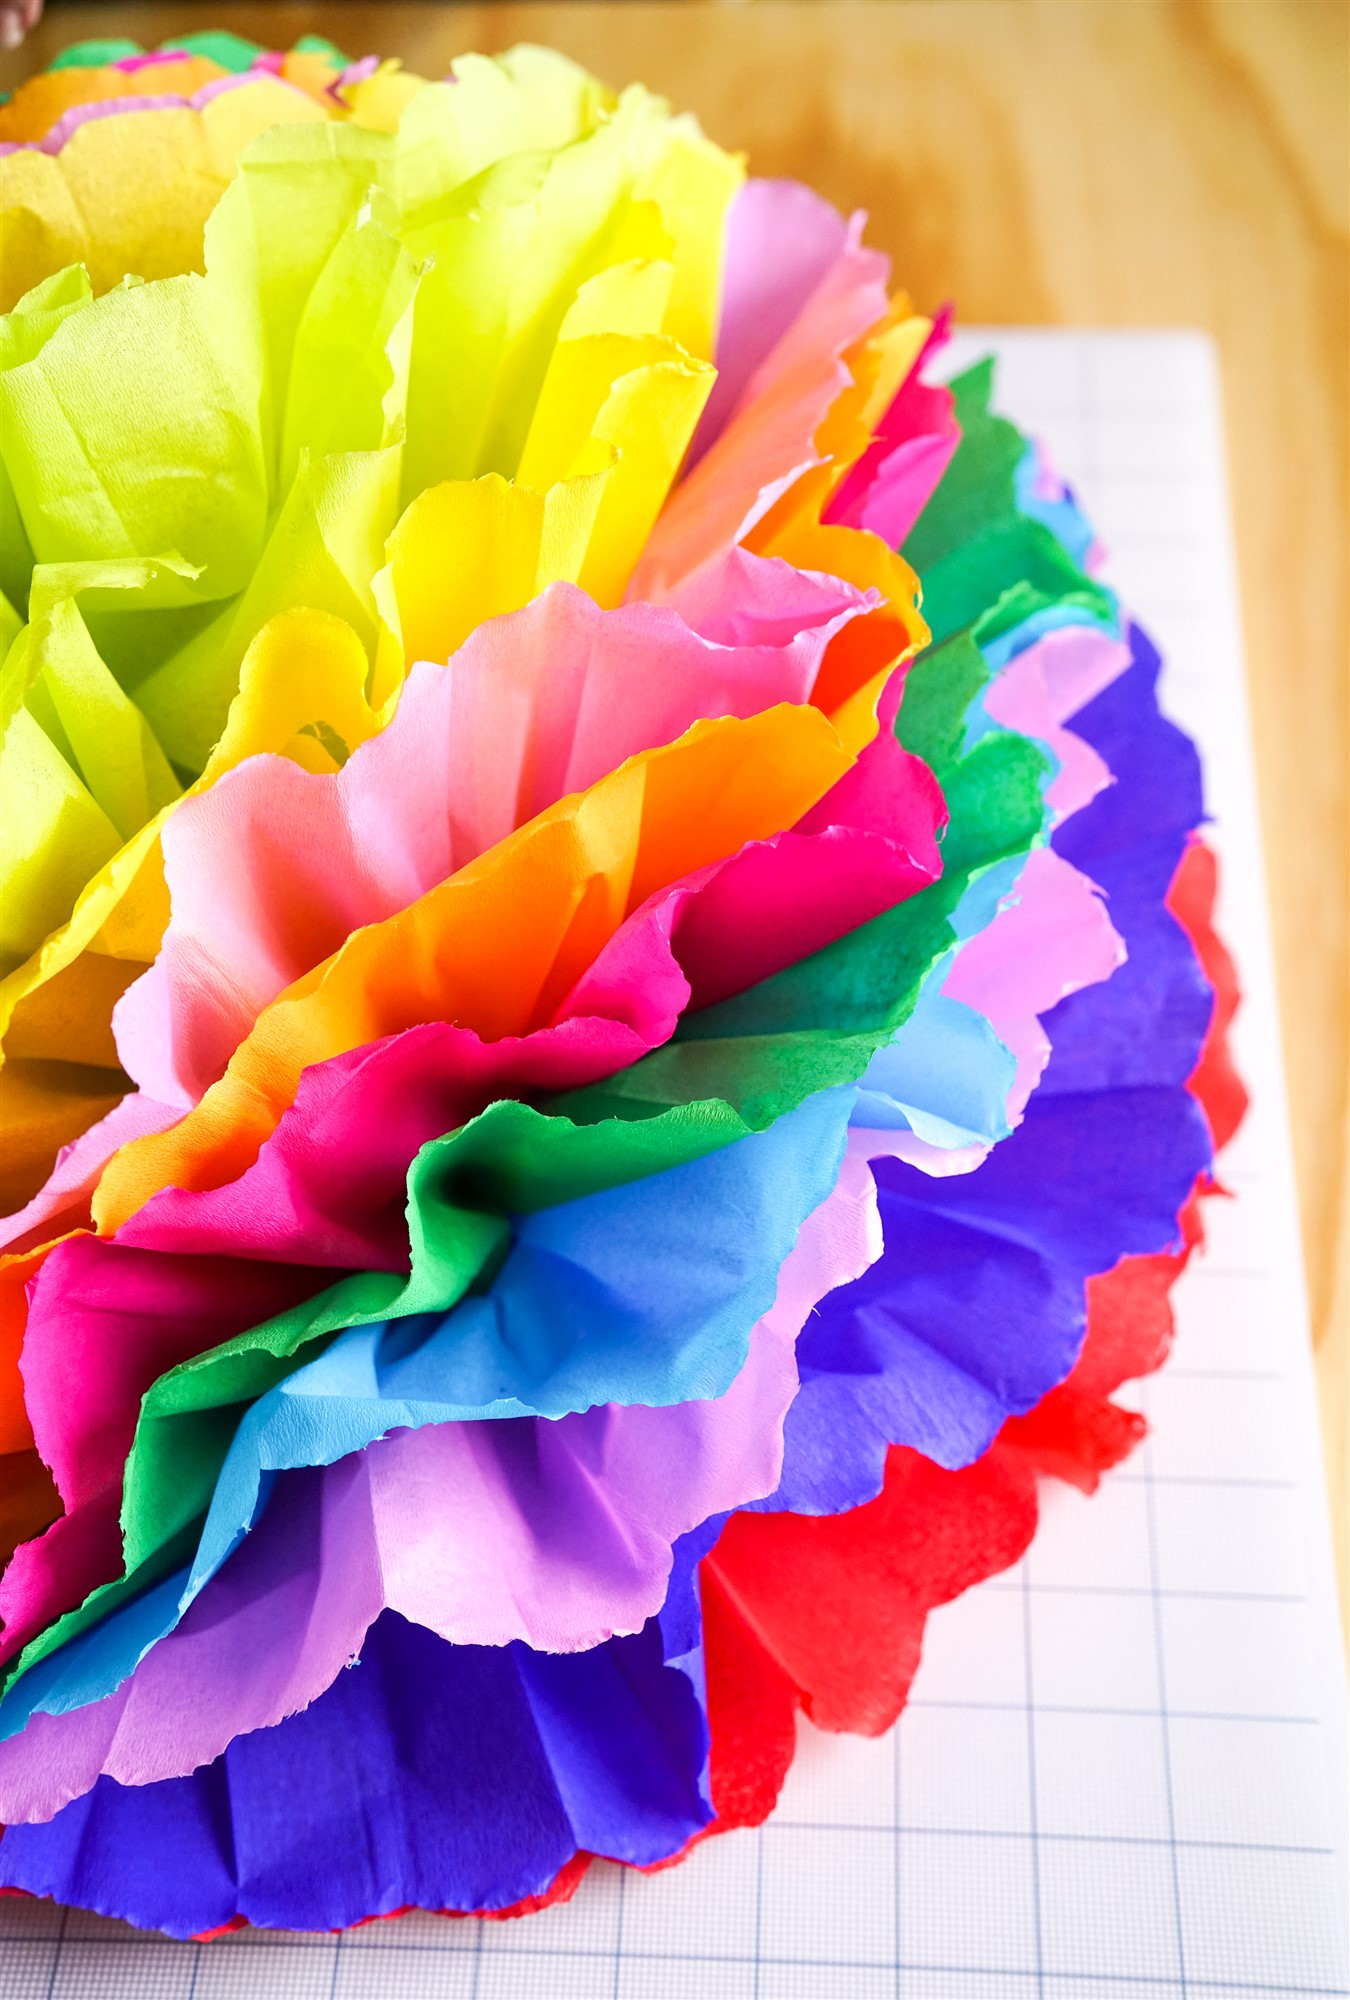 Fiesta flower tutorial make your own tissue paper flowers step 1 grab some sheets of tissue paper in your chosen colors for these we went bold and bright with 10 different colors to create this fiesta flower mightylinksfo